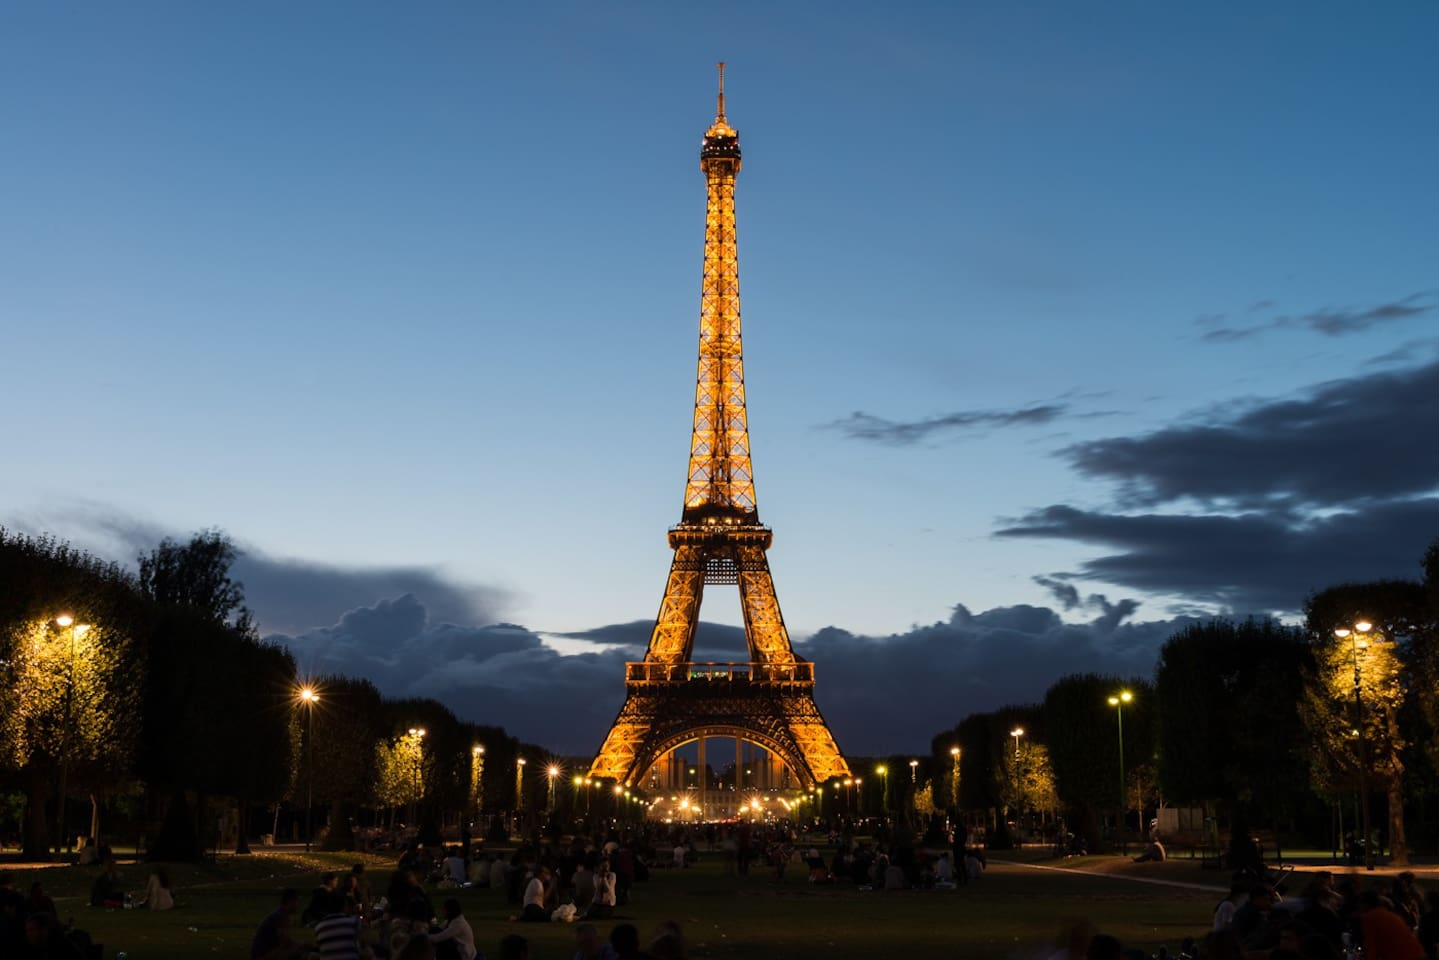 a 2 min walk from the flat during the evening and you can enjoy this gorgeous view. On summer, try to picnic on Champ de Mars in front of the Iron Lady